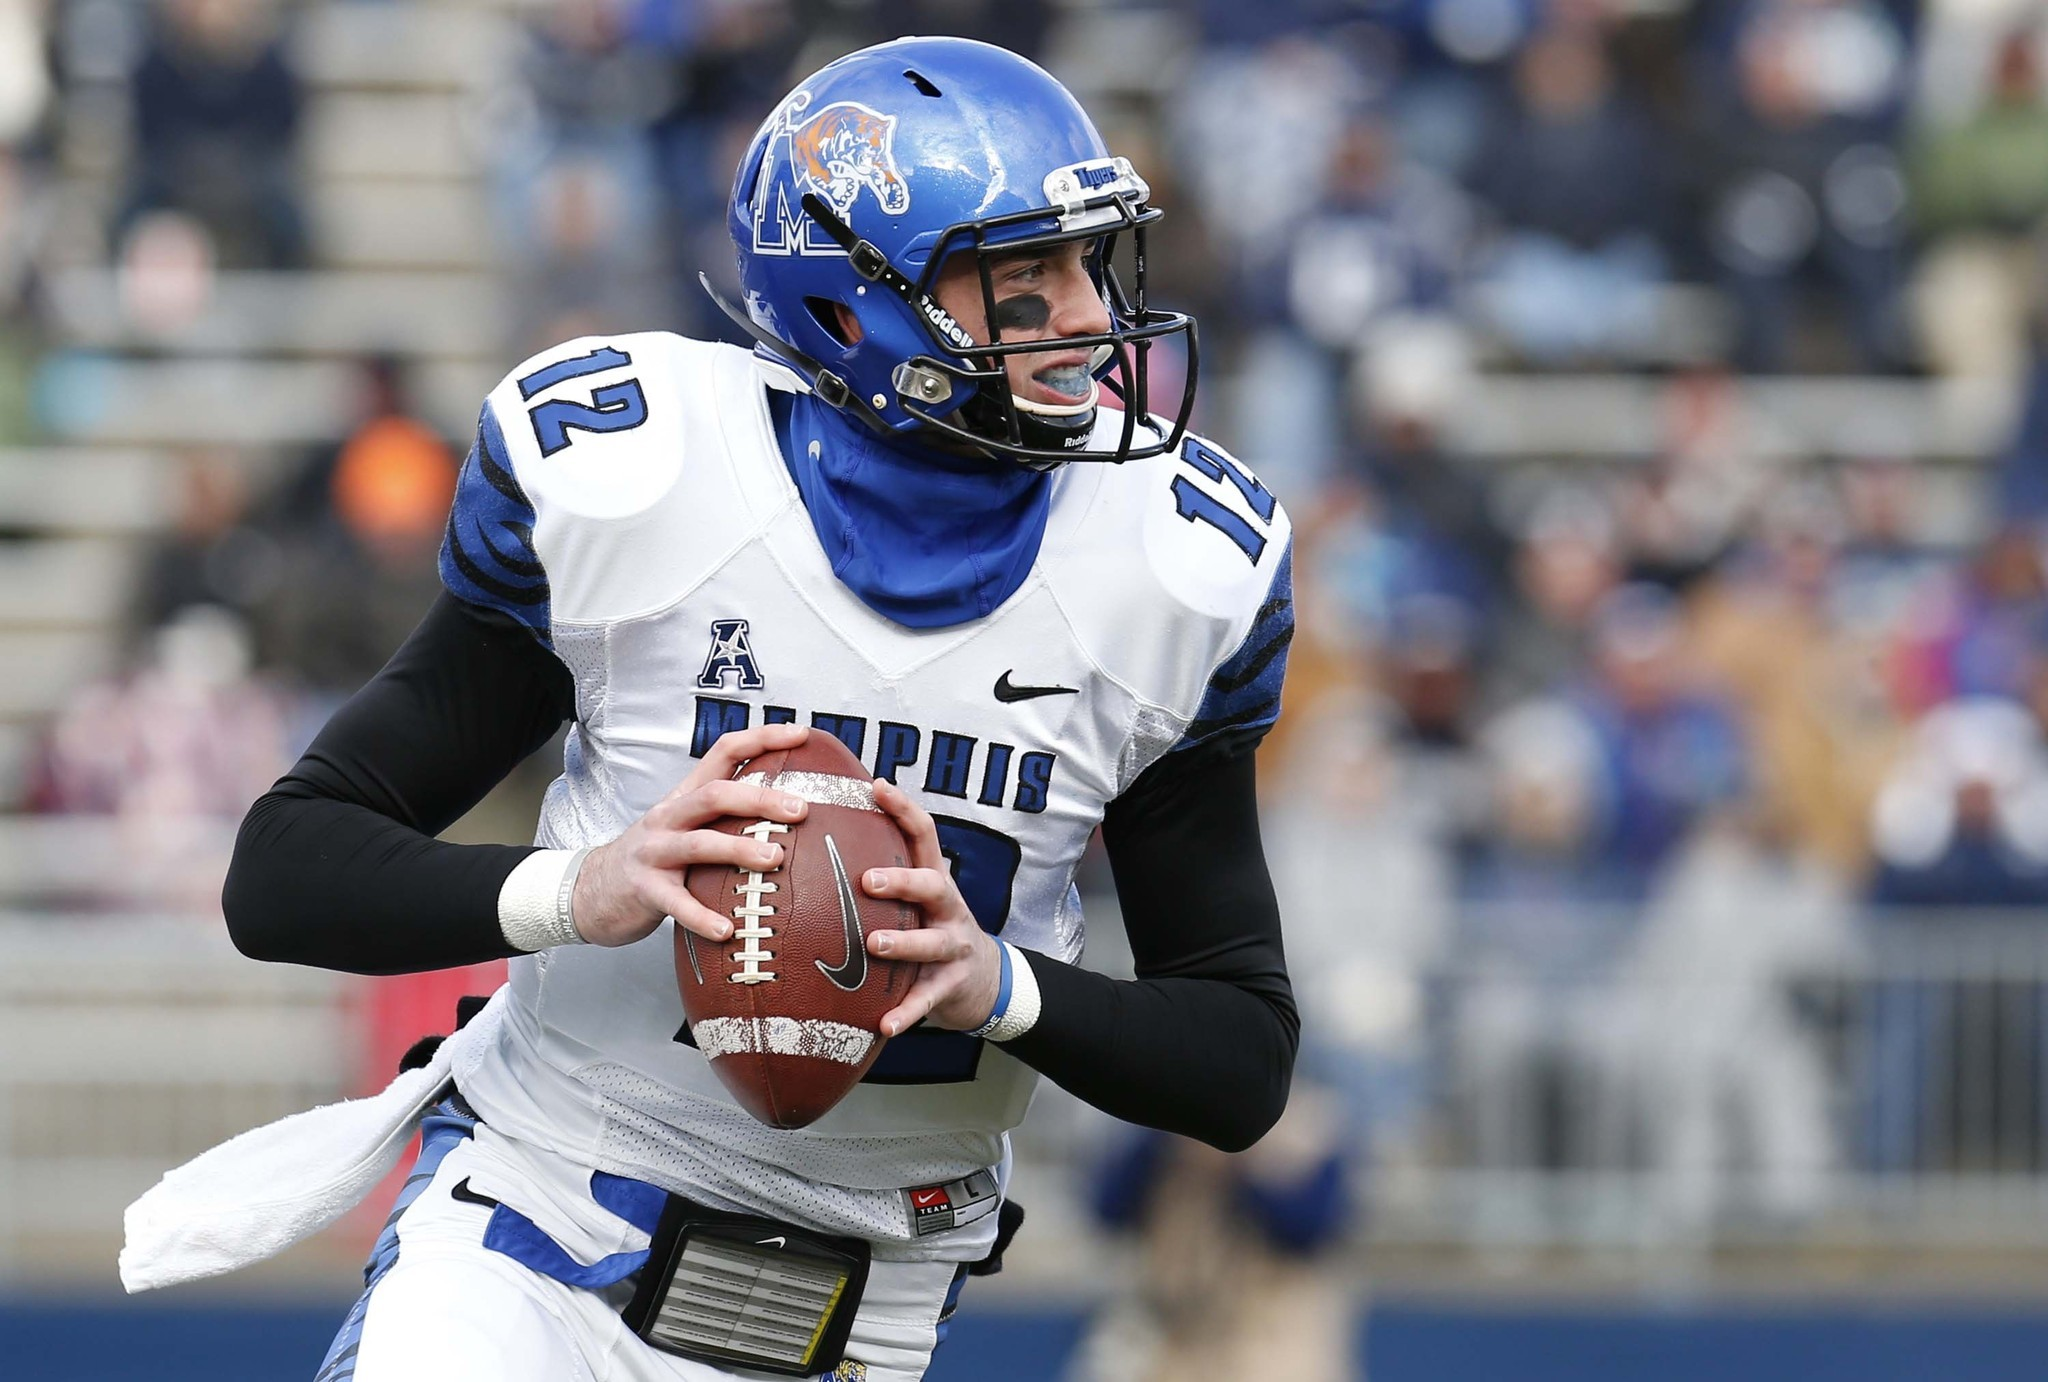 2016 NFL Draft Headlines: Eagles show interest in Paxton Lynch, Cardale Jones and Ezekiel Elliott declare for draft